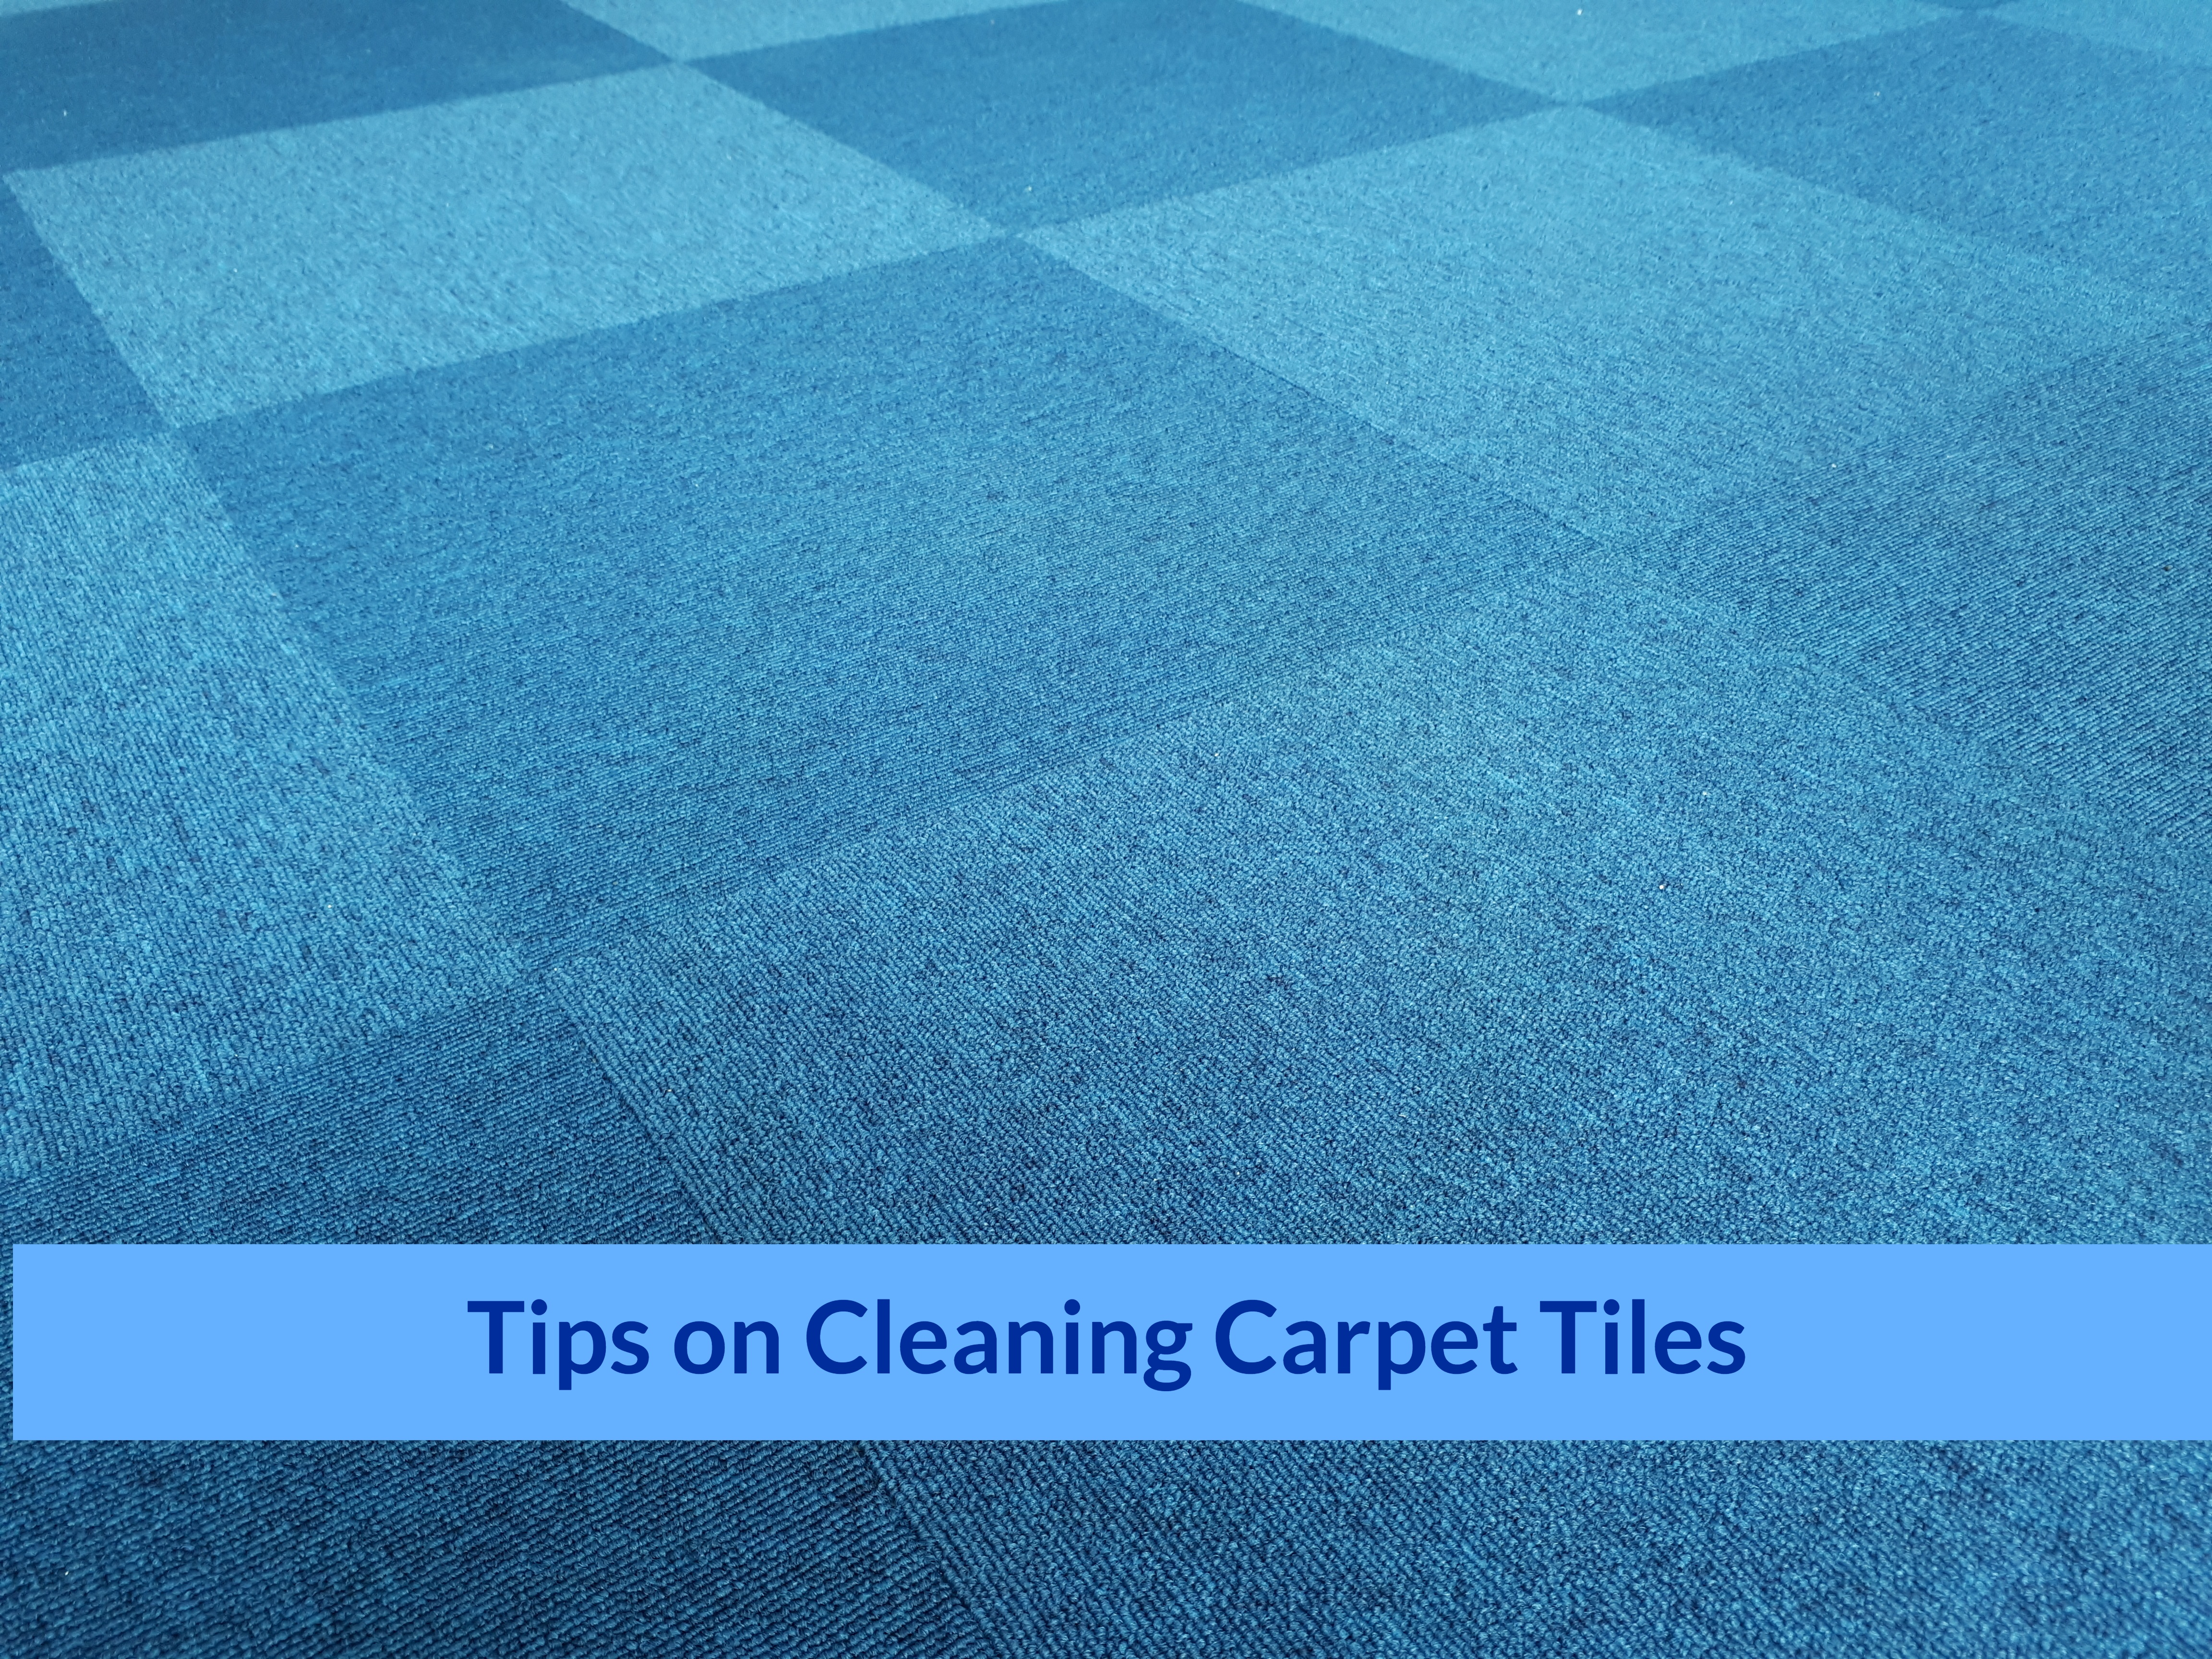 Tips On Cleaning Carpet Tiles